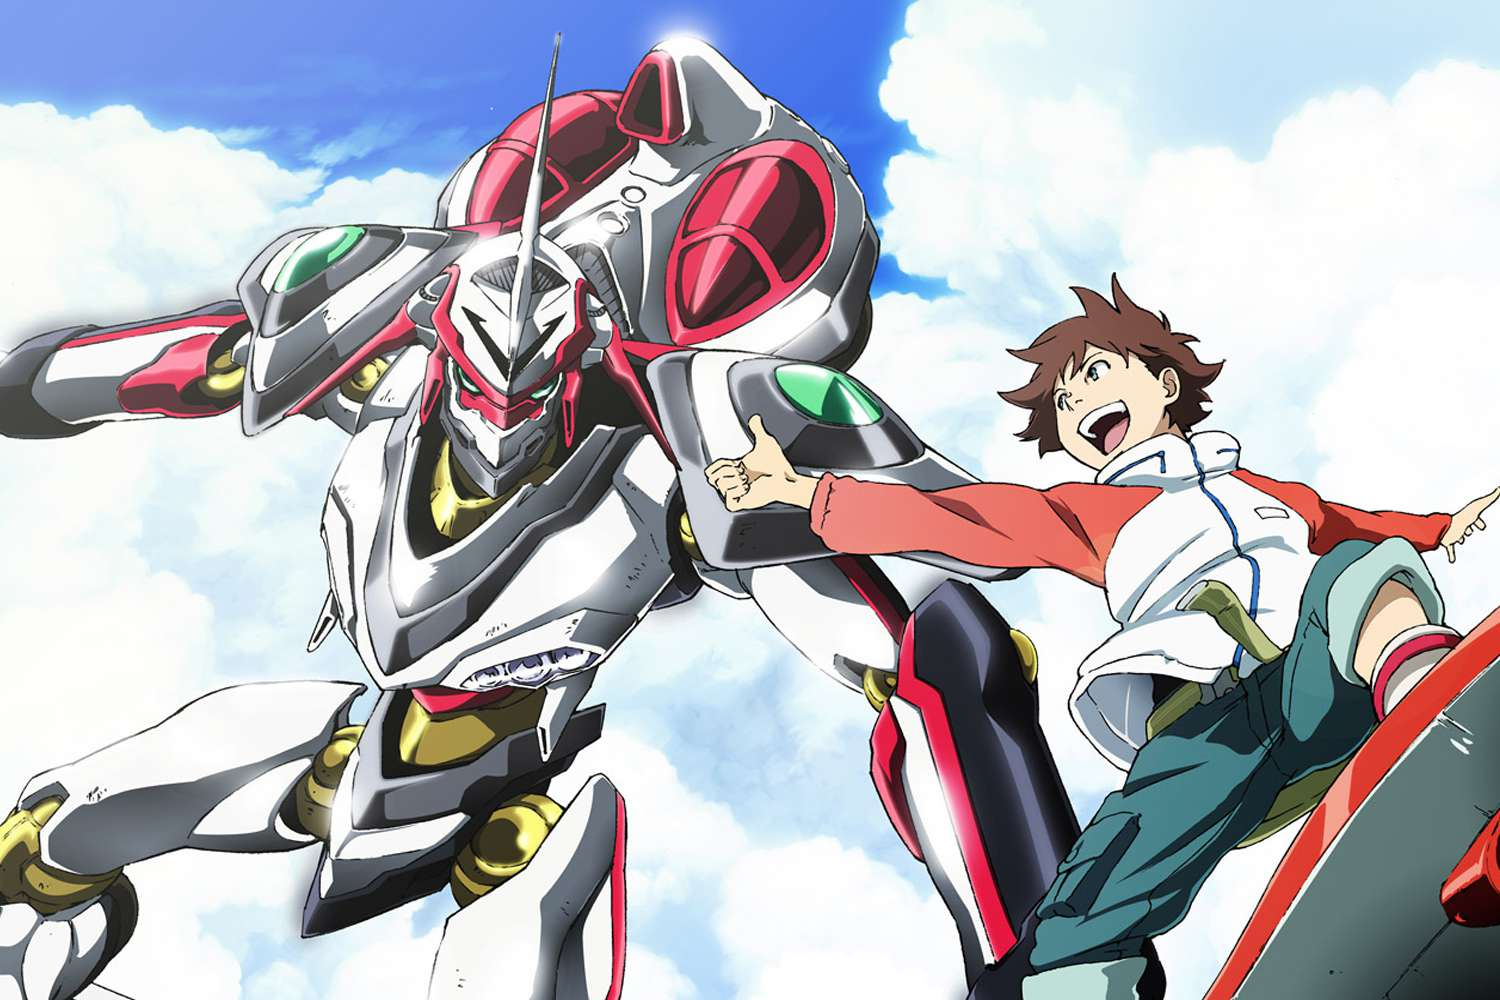 Anime Alien Girl 19 must-see anime series with giant robots